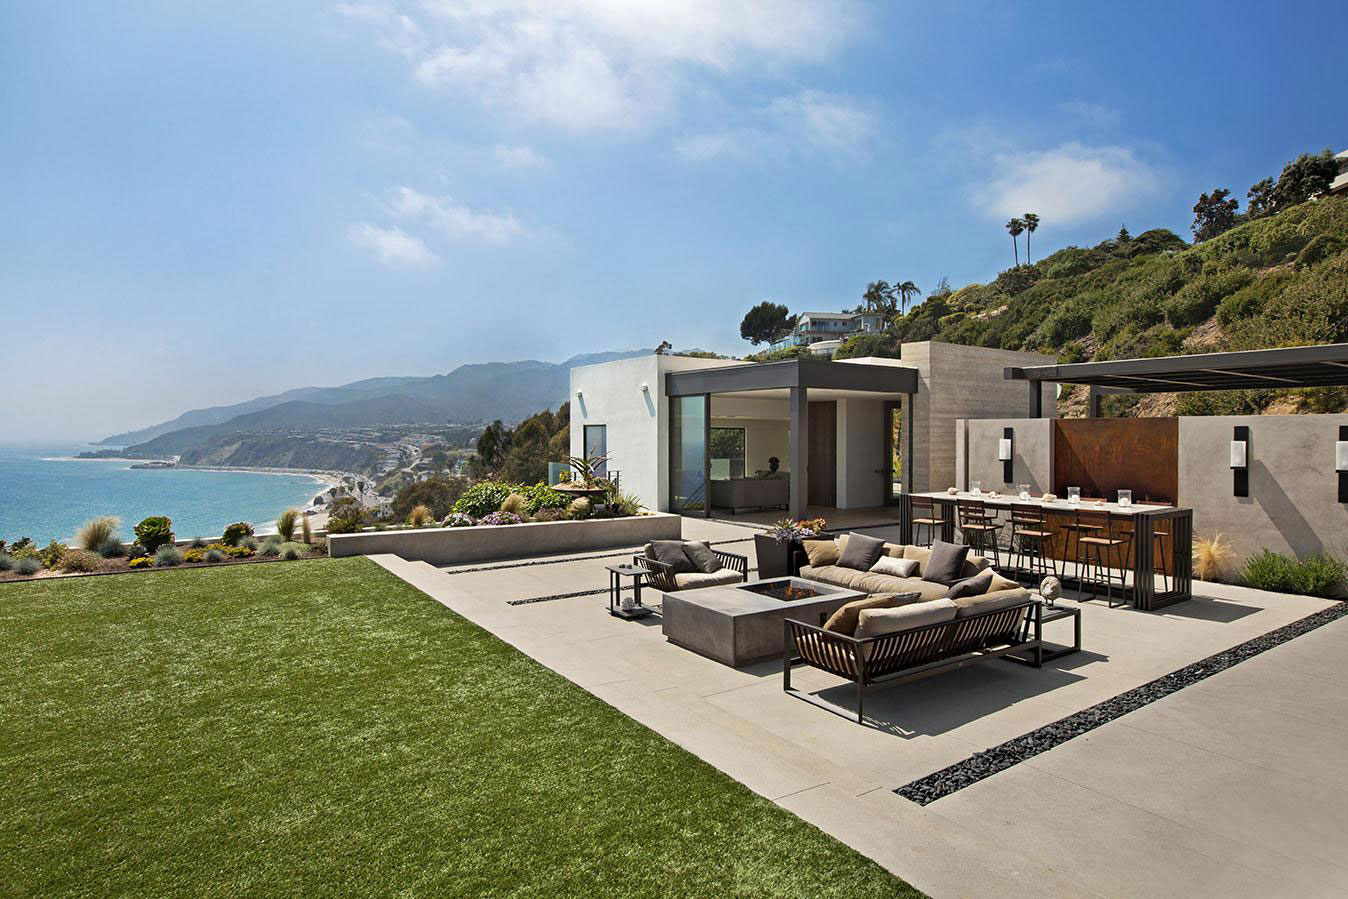 Clifftop house in pacific palisades los angeles for The view house